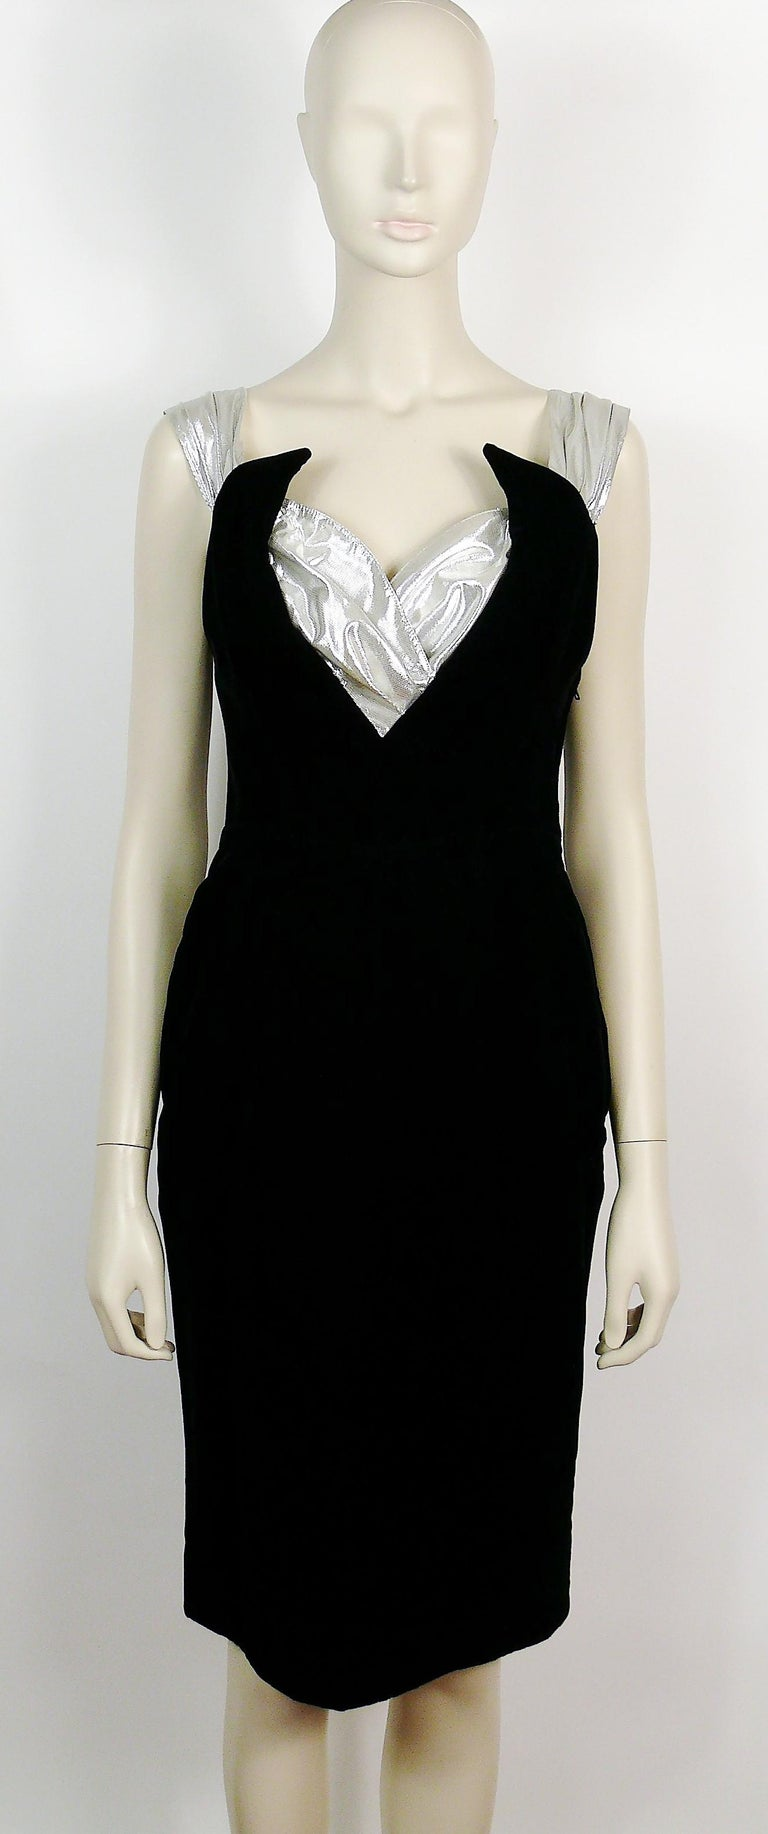 Vintage silver and black spaghetti strap dress with side bow